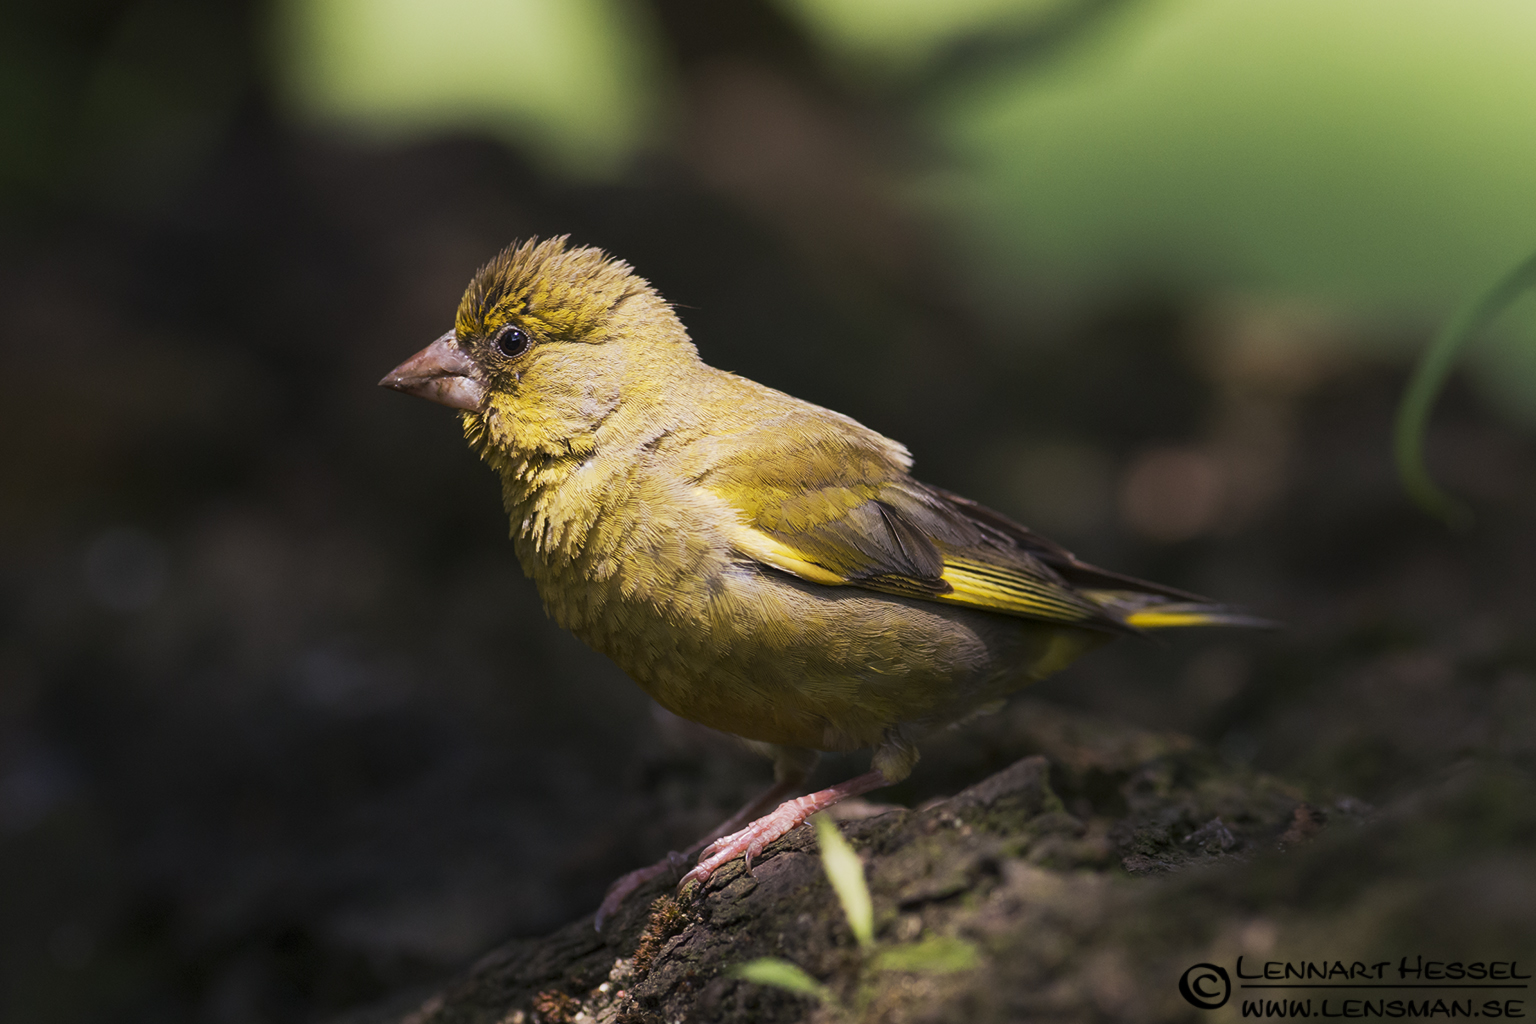 Greenfinch in Hungary